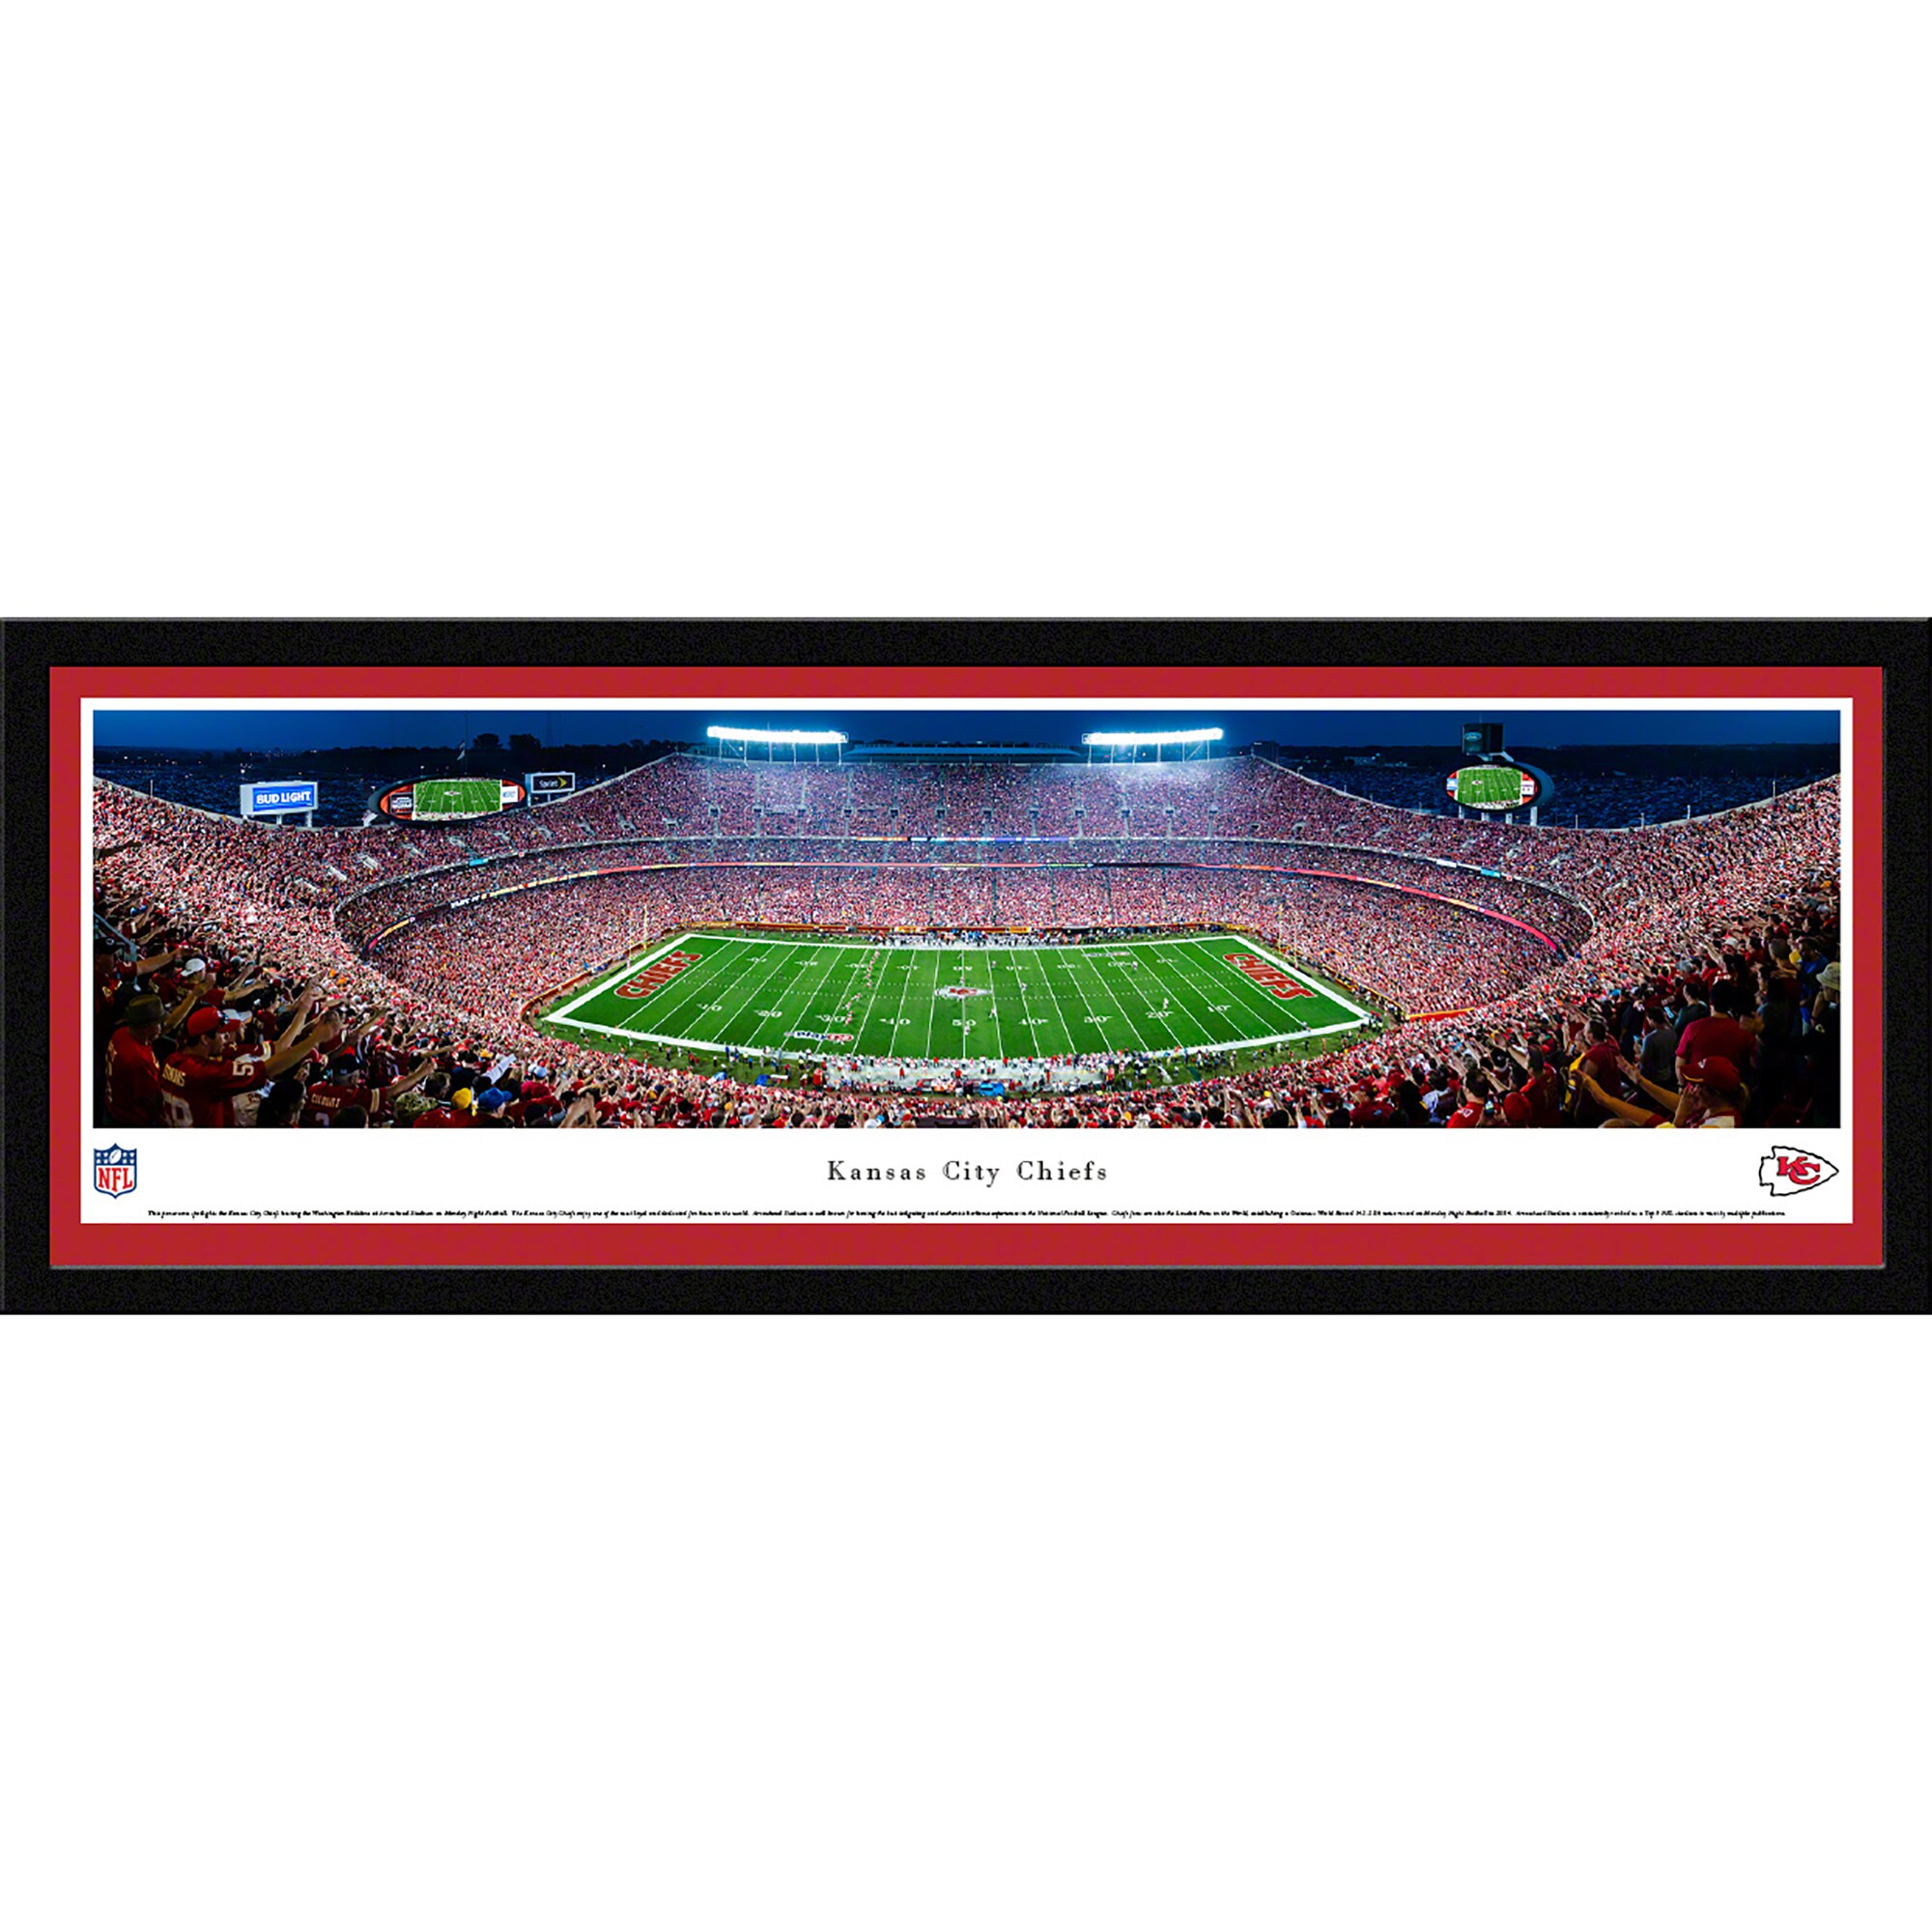 "Kansas City Chiefs 42"" x 15.5"" 50-Yard Line Select Framed Panoramic"